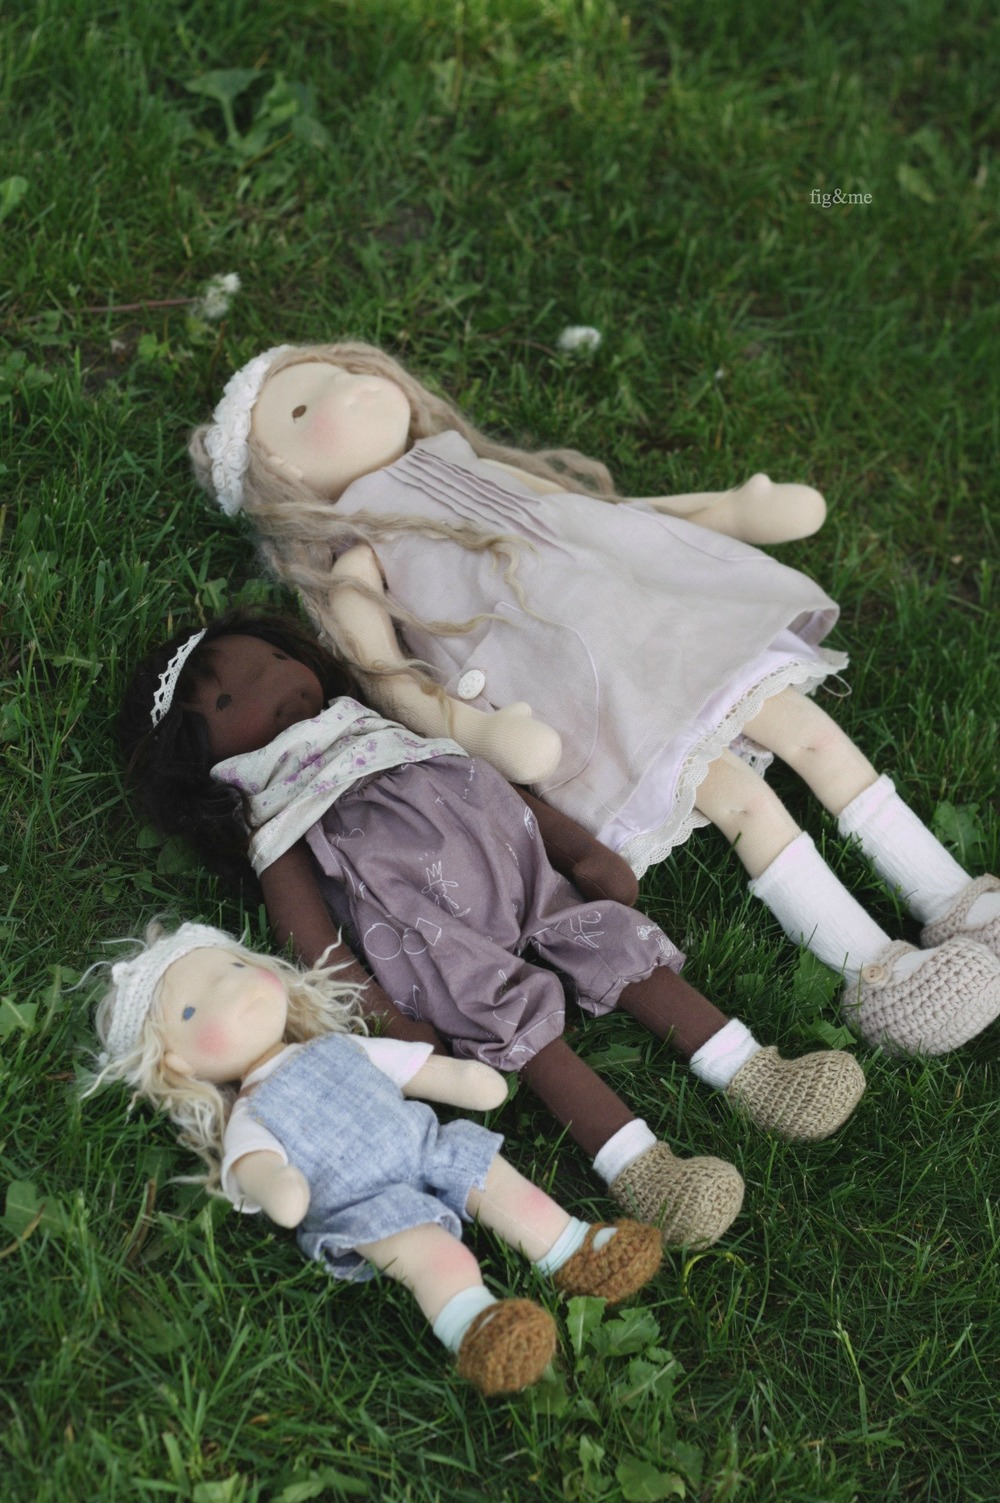 Three little dolls, 8.5in, 15in, 20in. By Fig and me.